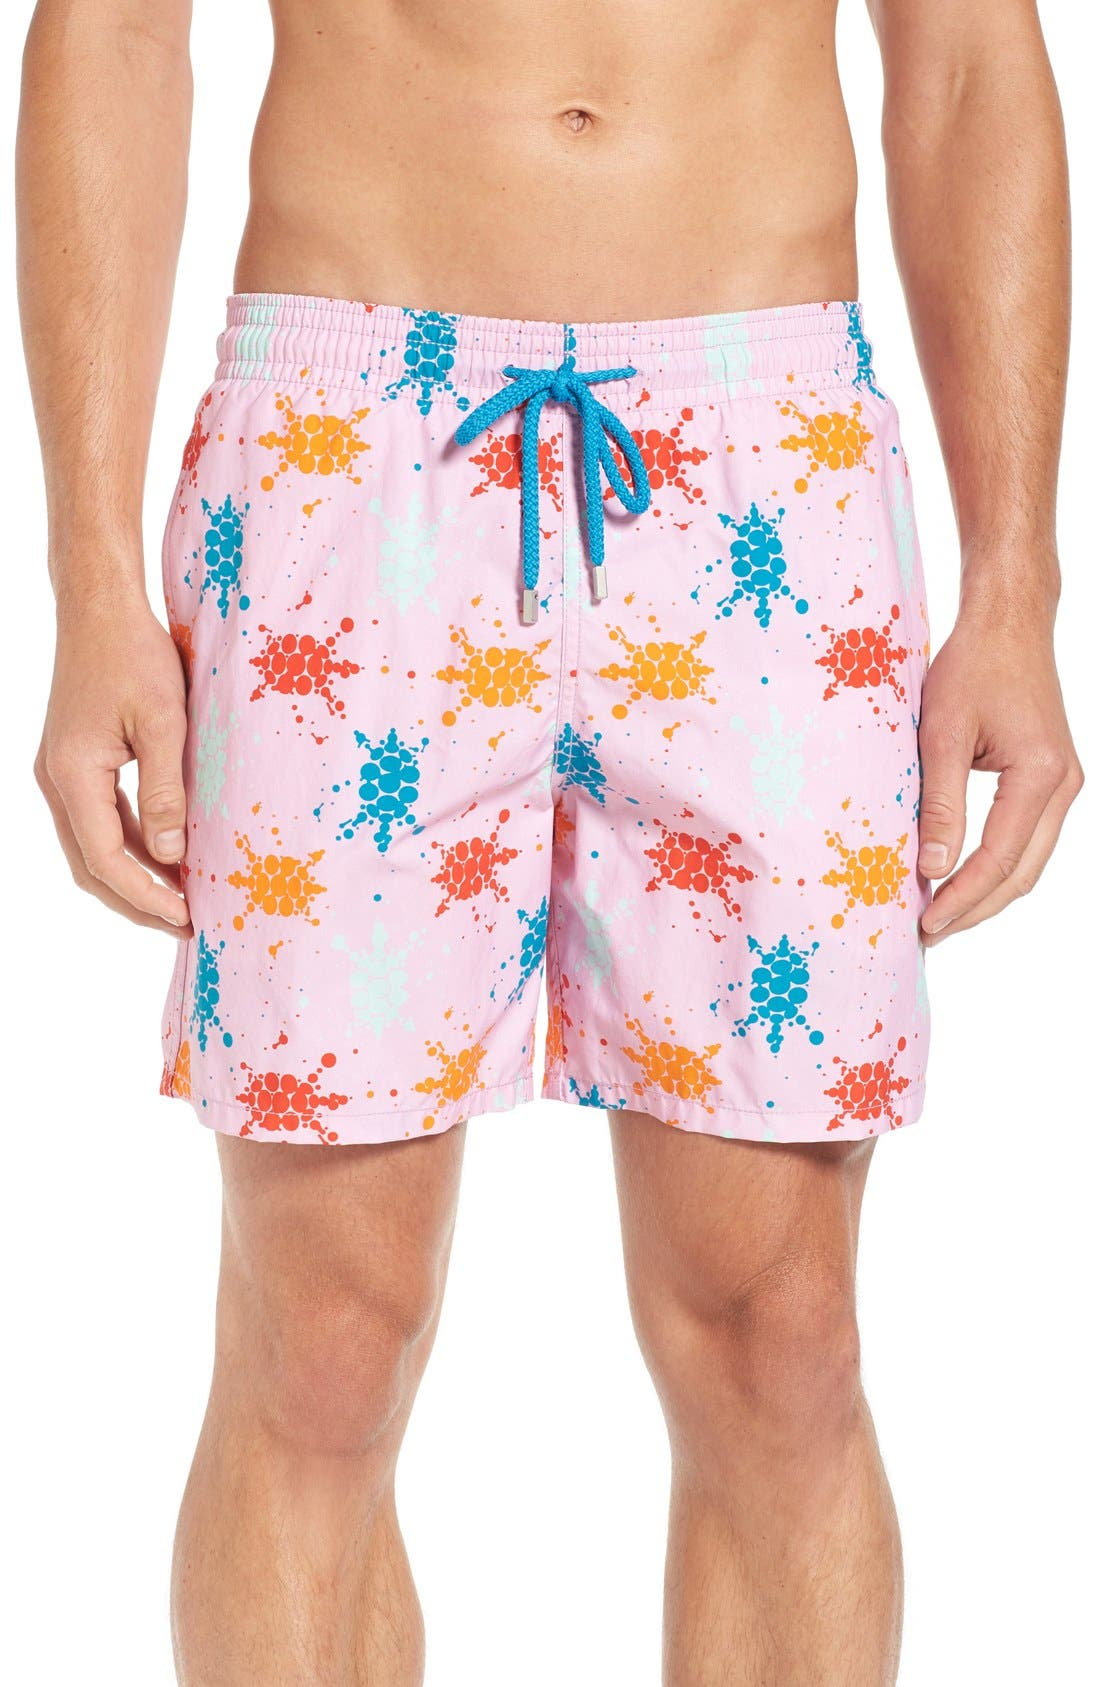 Japan Turtles Print Swim Trunks,                         Main,                         color, 659